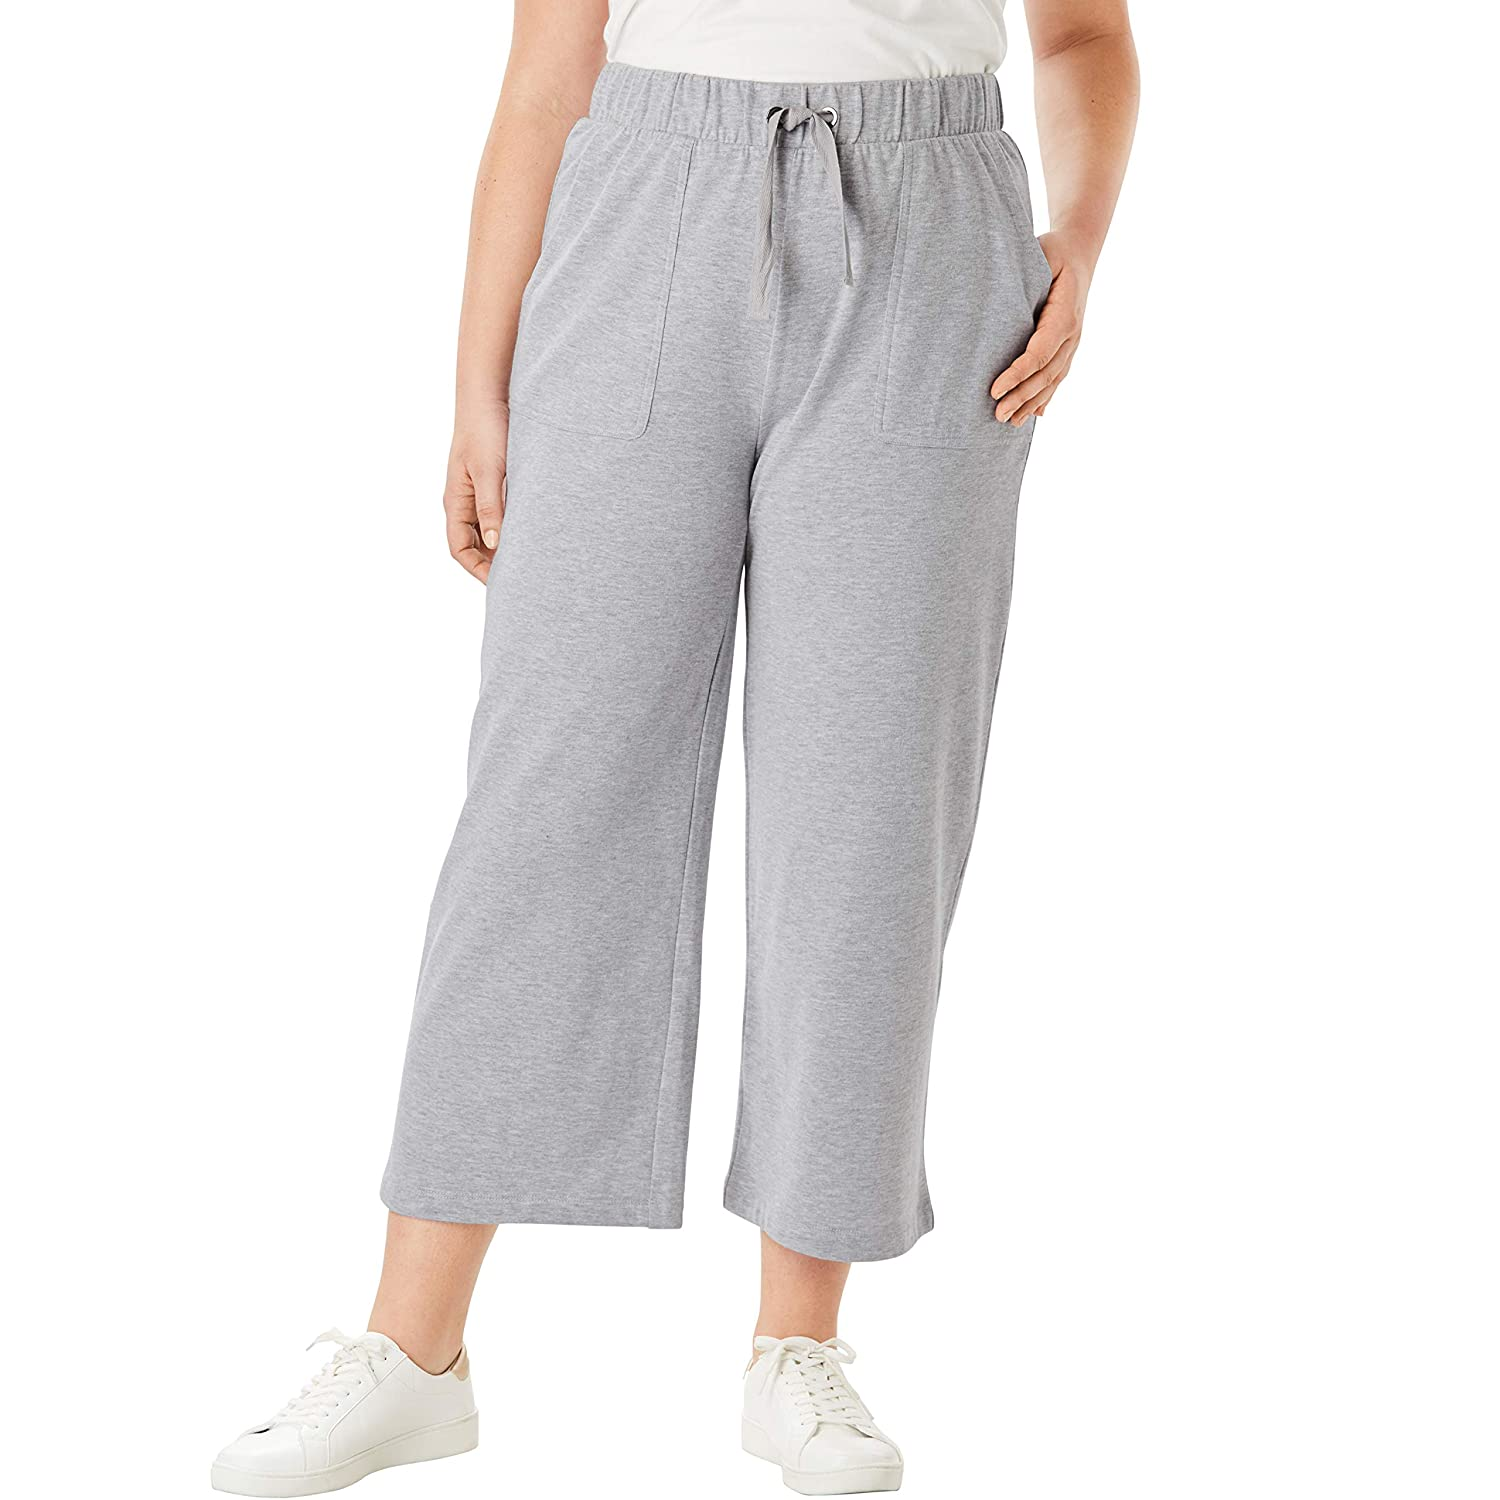 Roamans Womens Plus Size Wide-Leg Crop French Terry Pant with Drawstring Waist